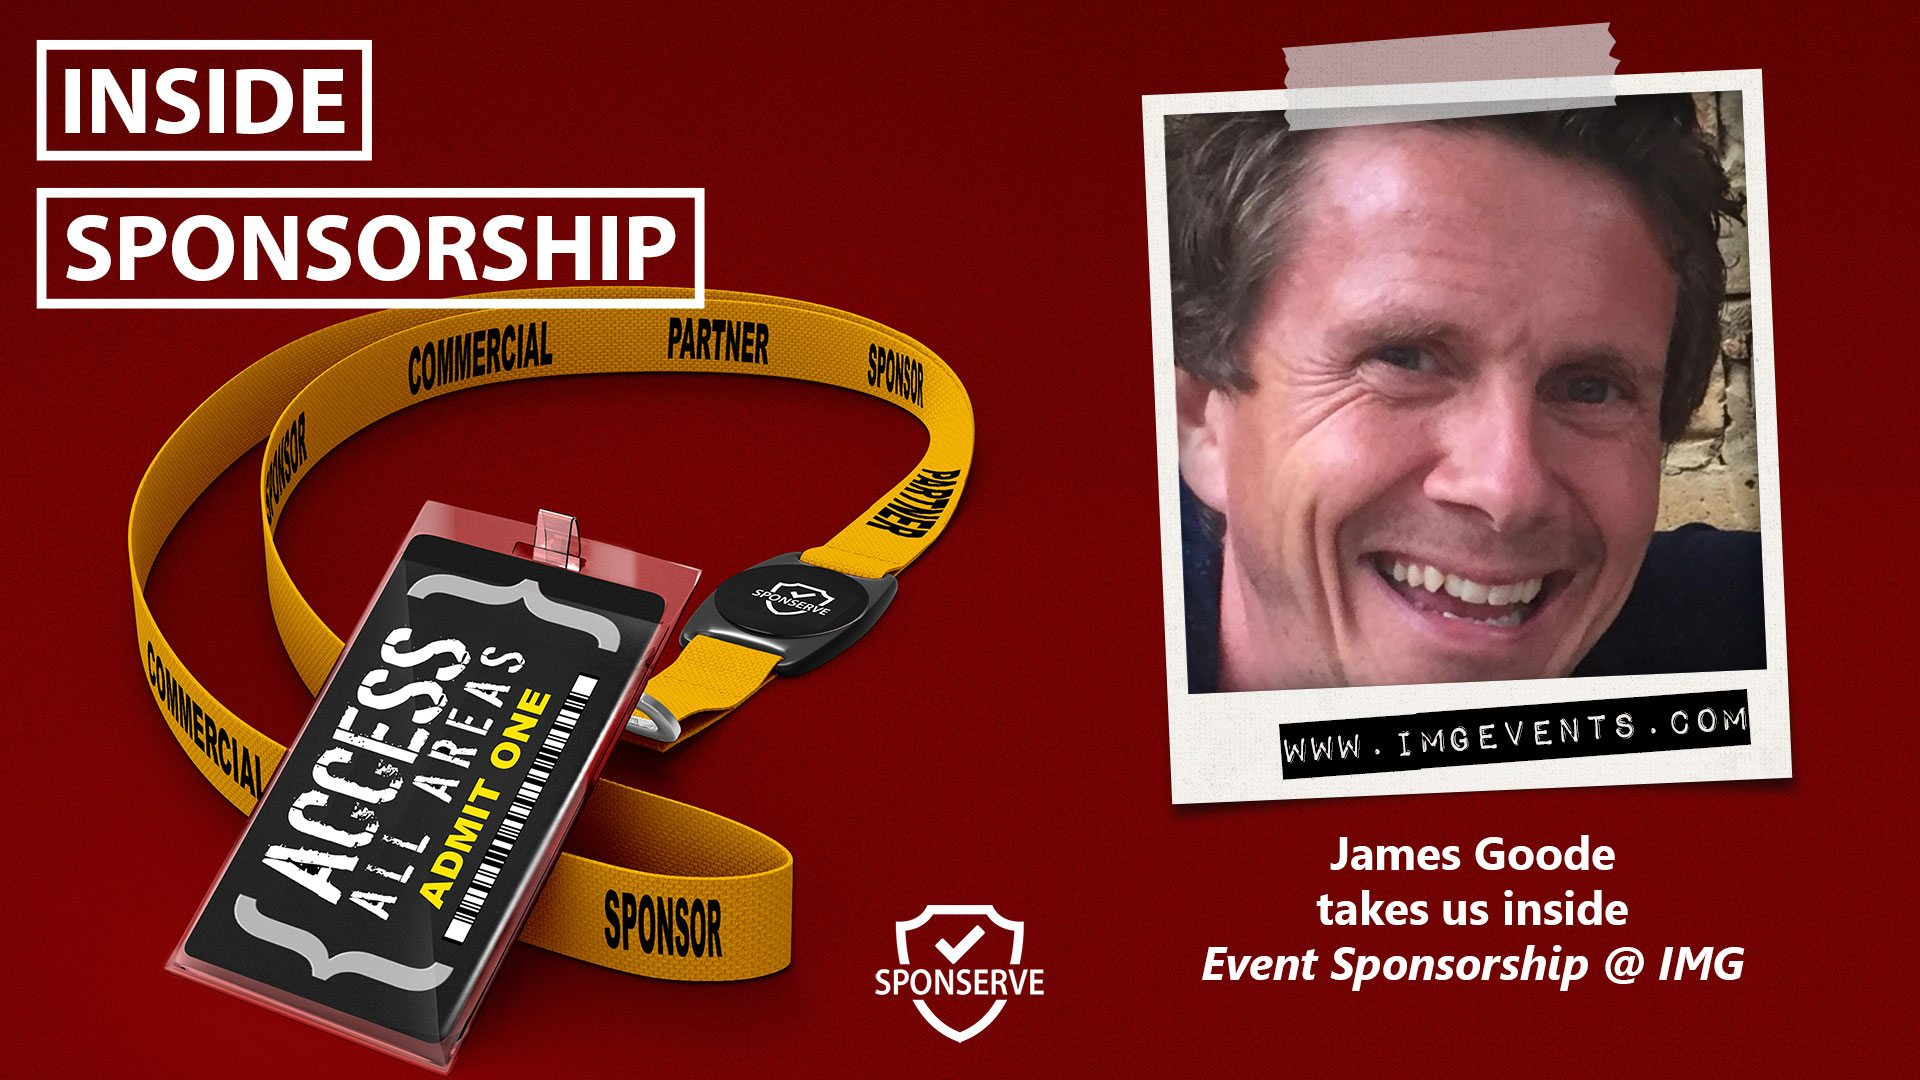 inside sponsorship james goode img